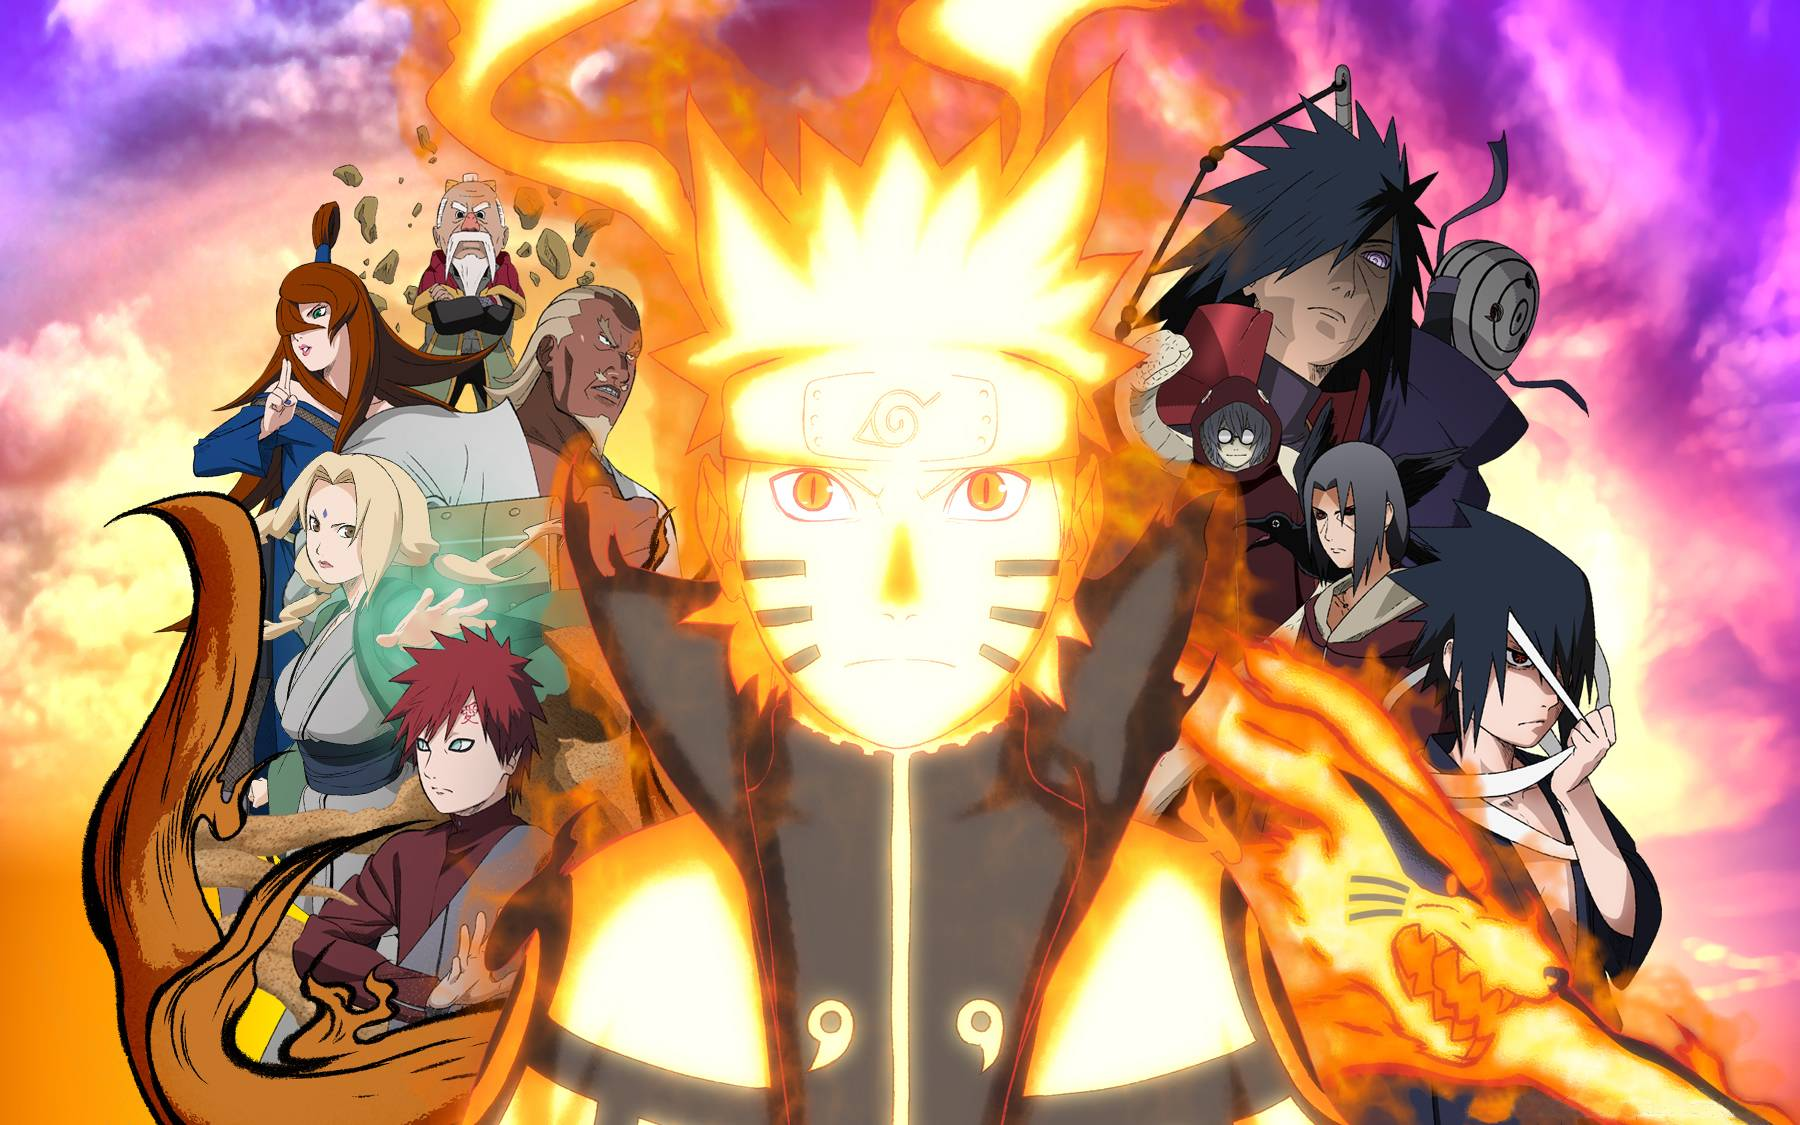 wallpapers naruto shippuden hd 2015 - wallpaper cave